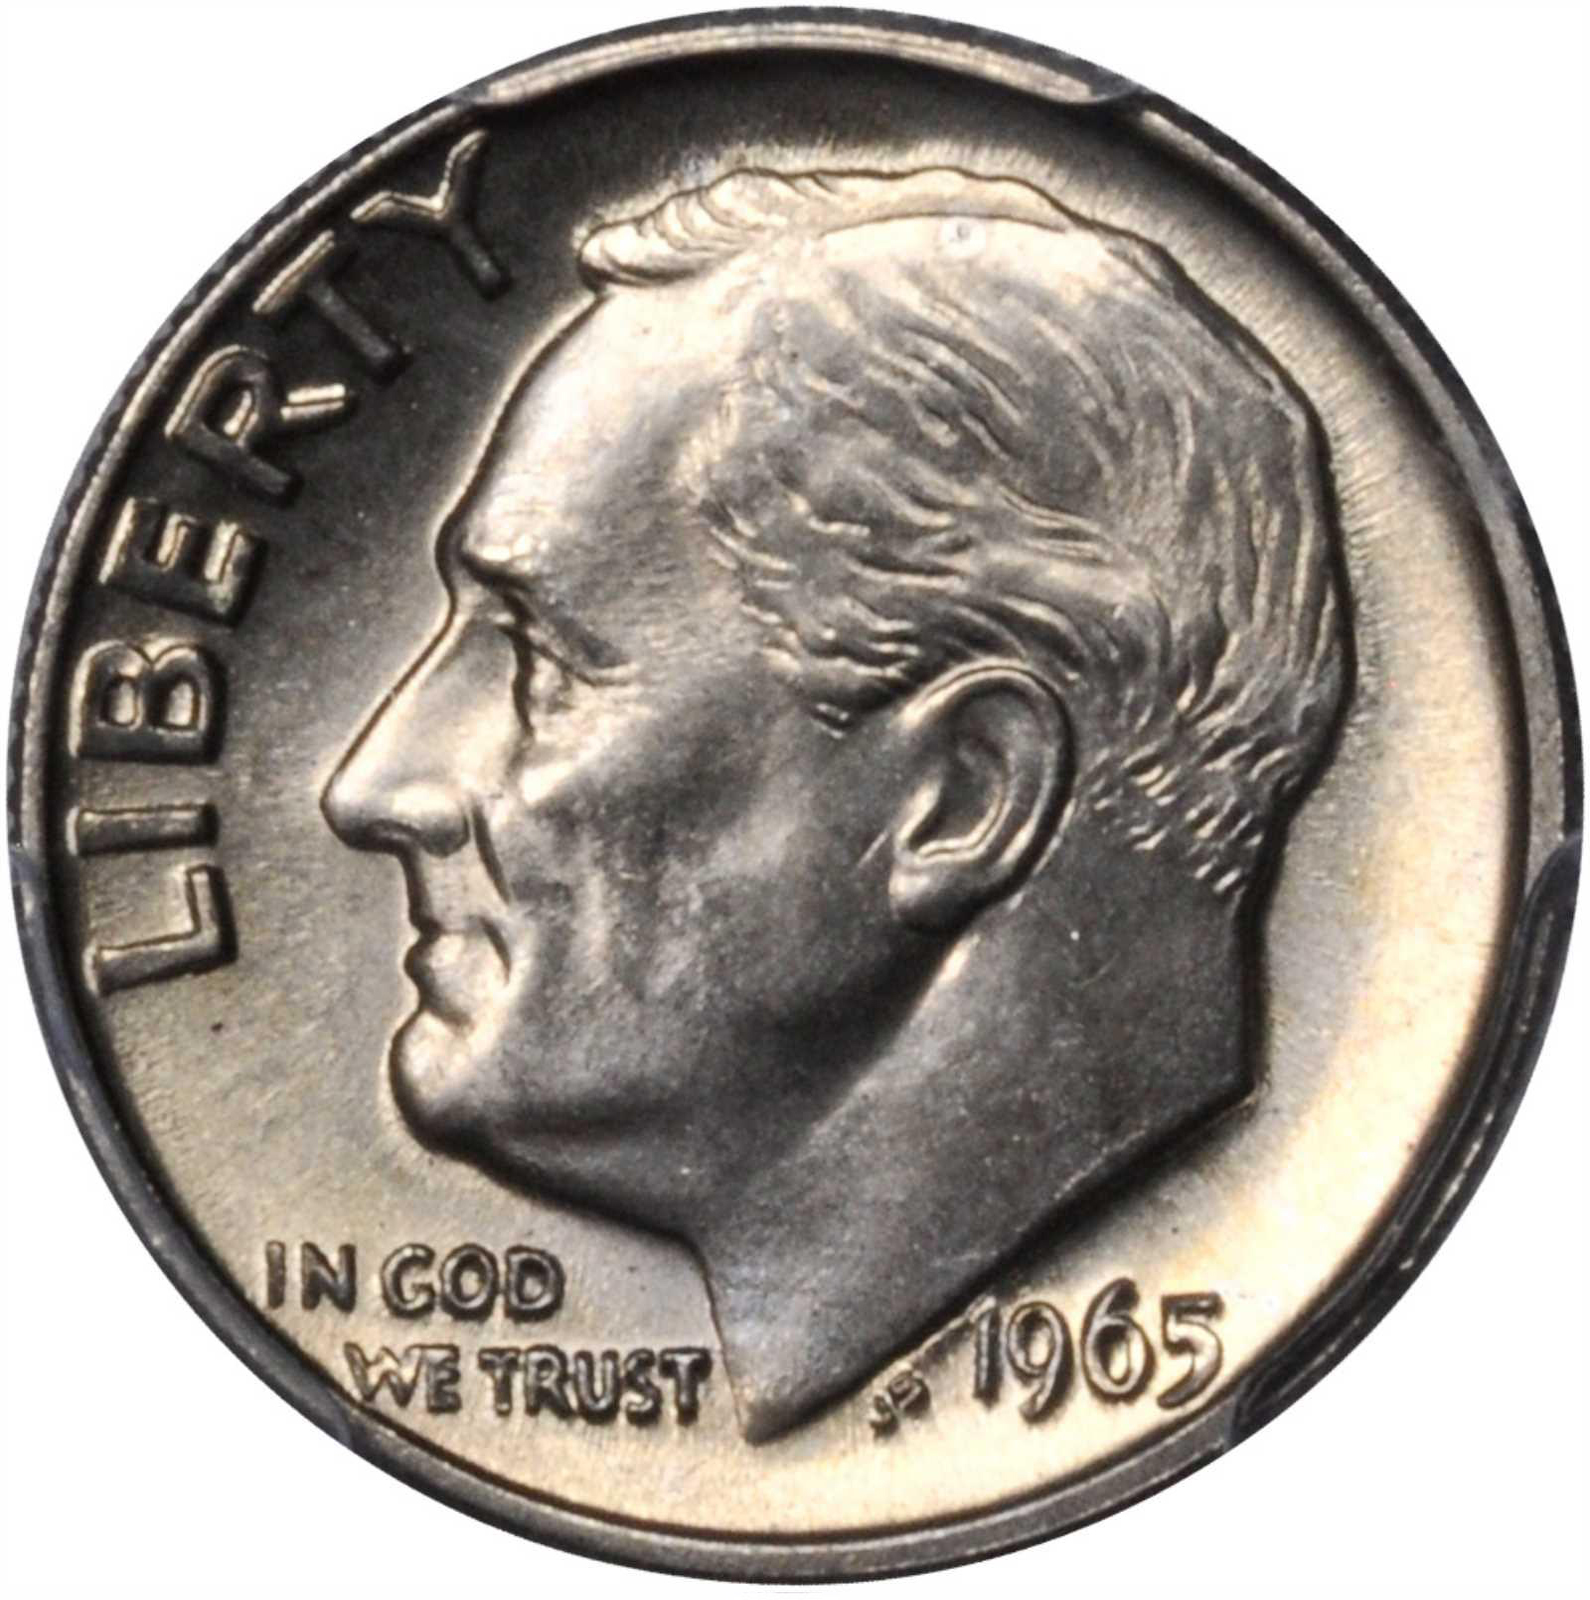 Value of 1965 Dime | Sell and Auction, Rare Coin Buyers